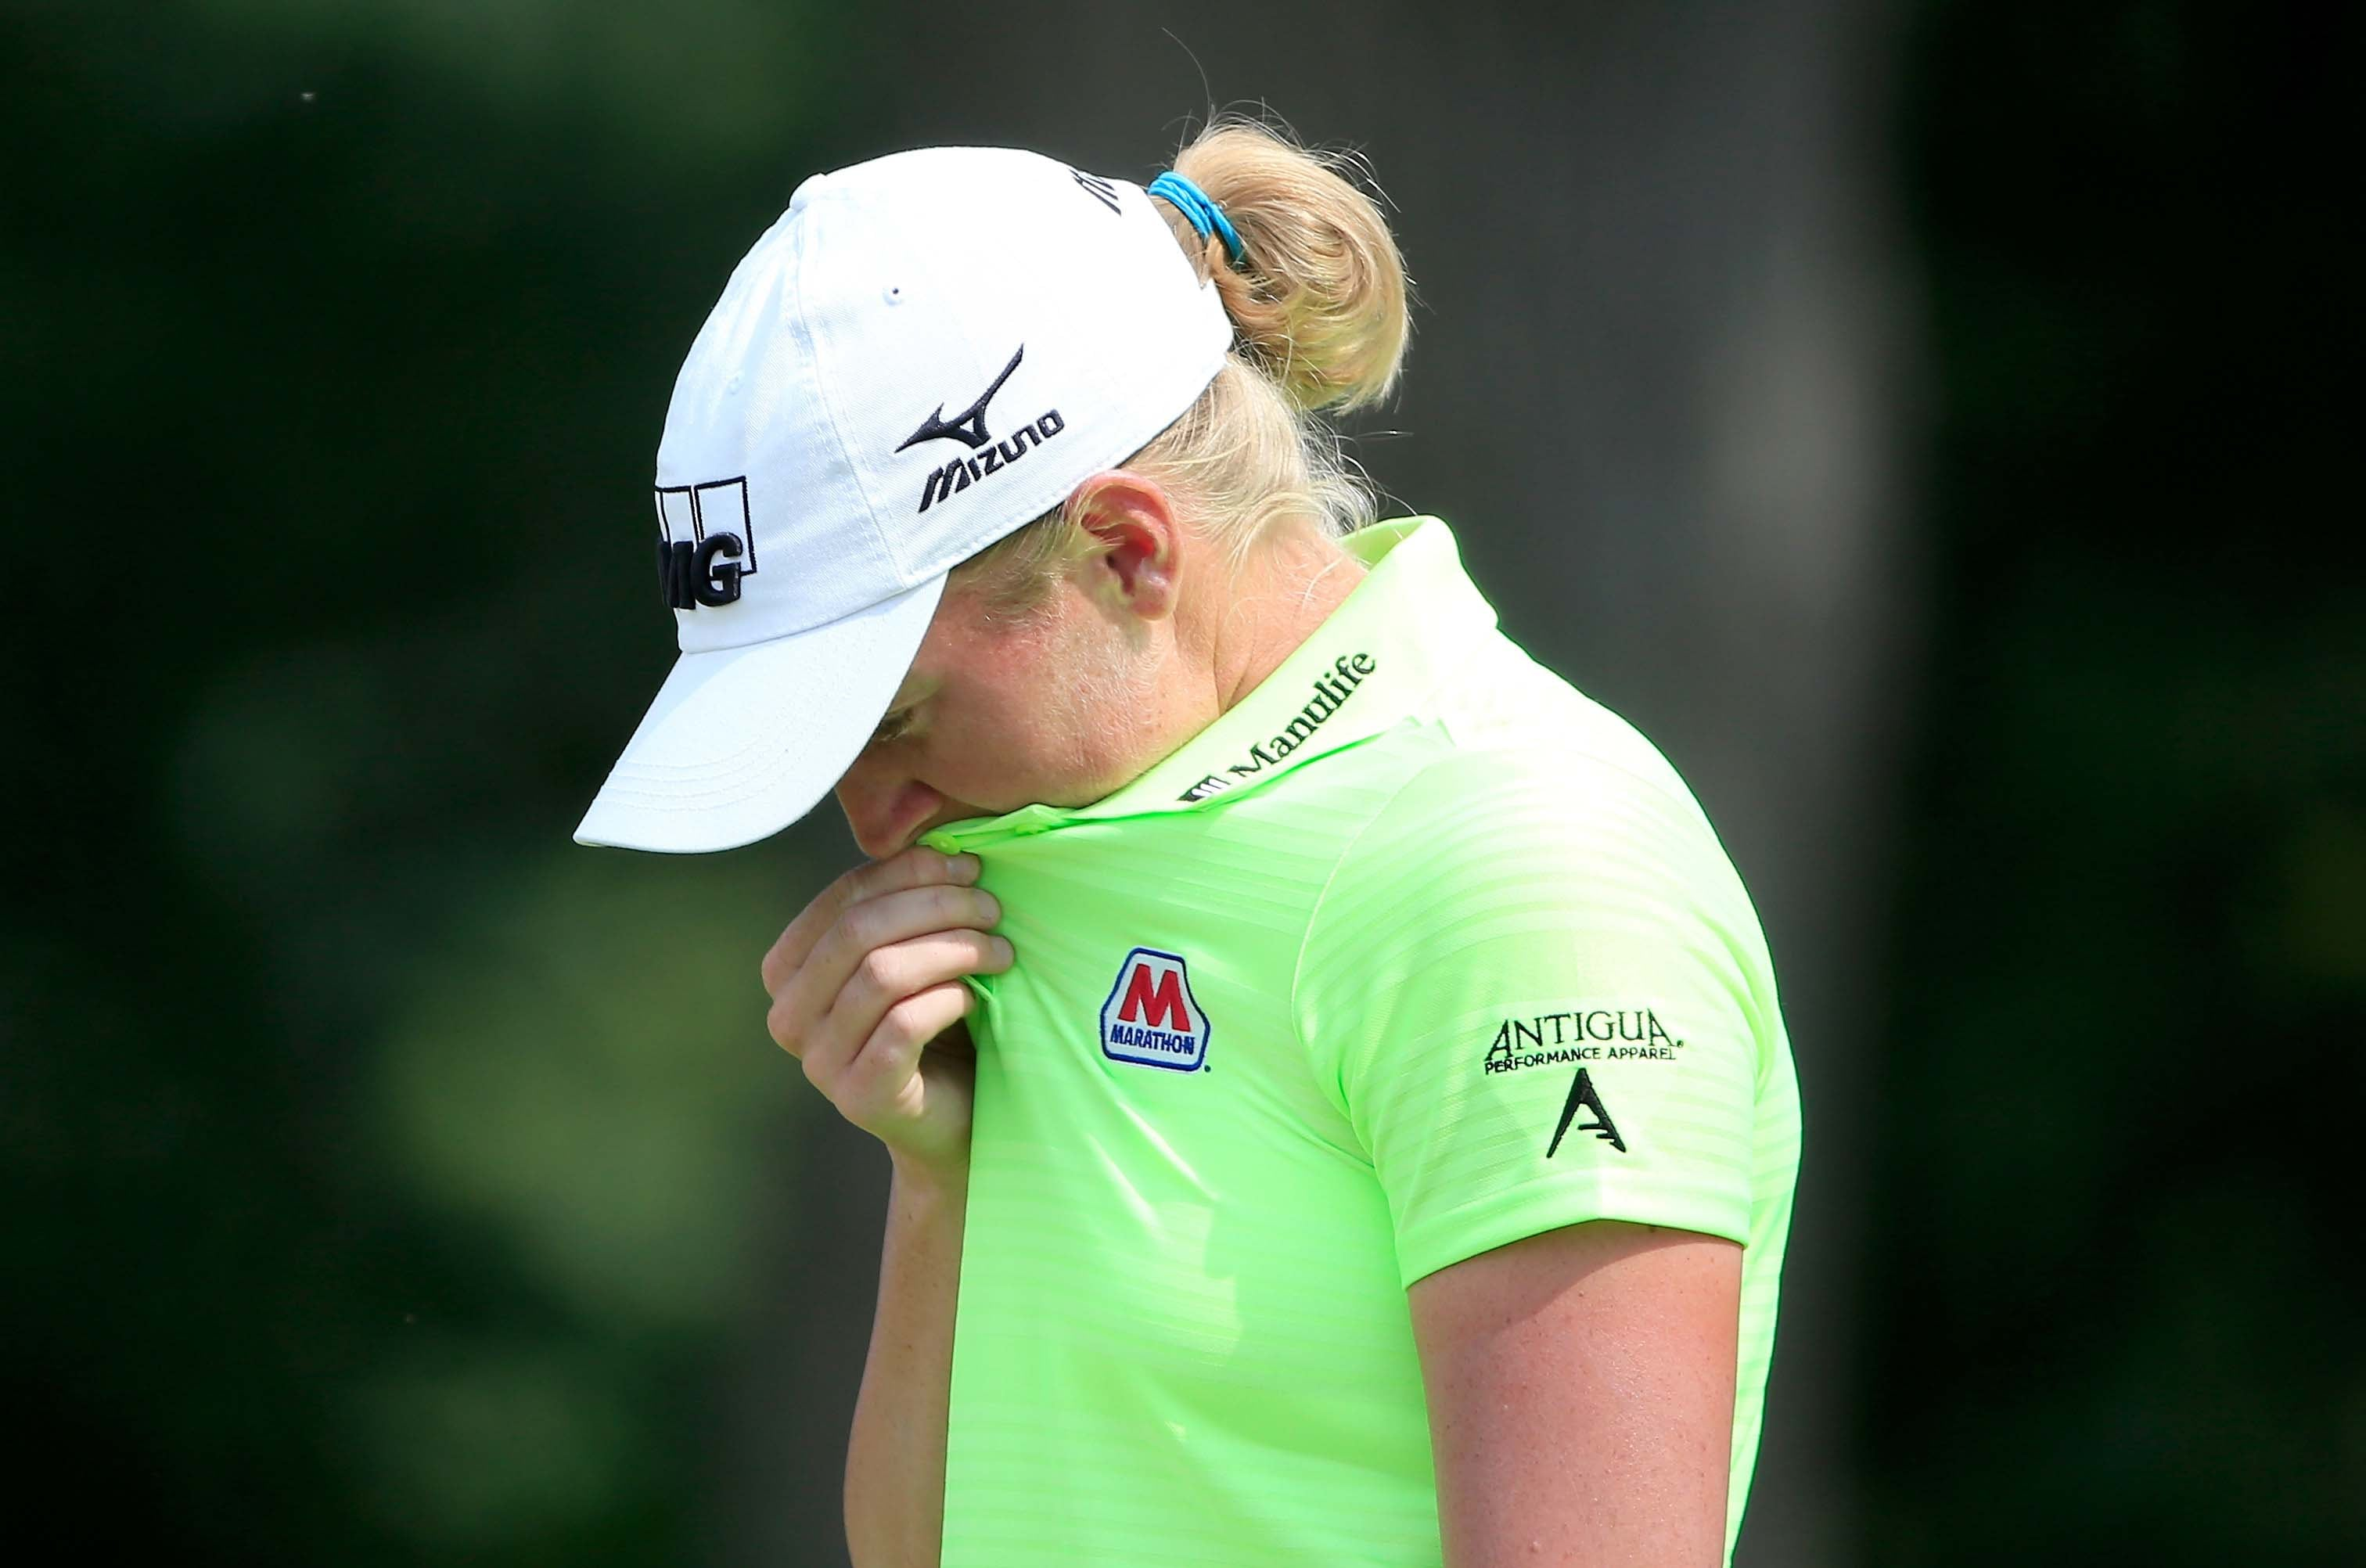 8. Winless year for Stacy Lewis